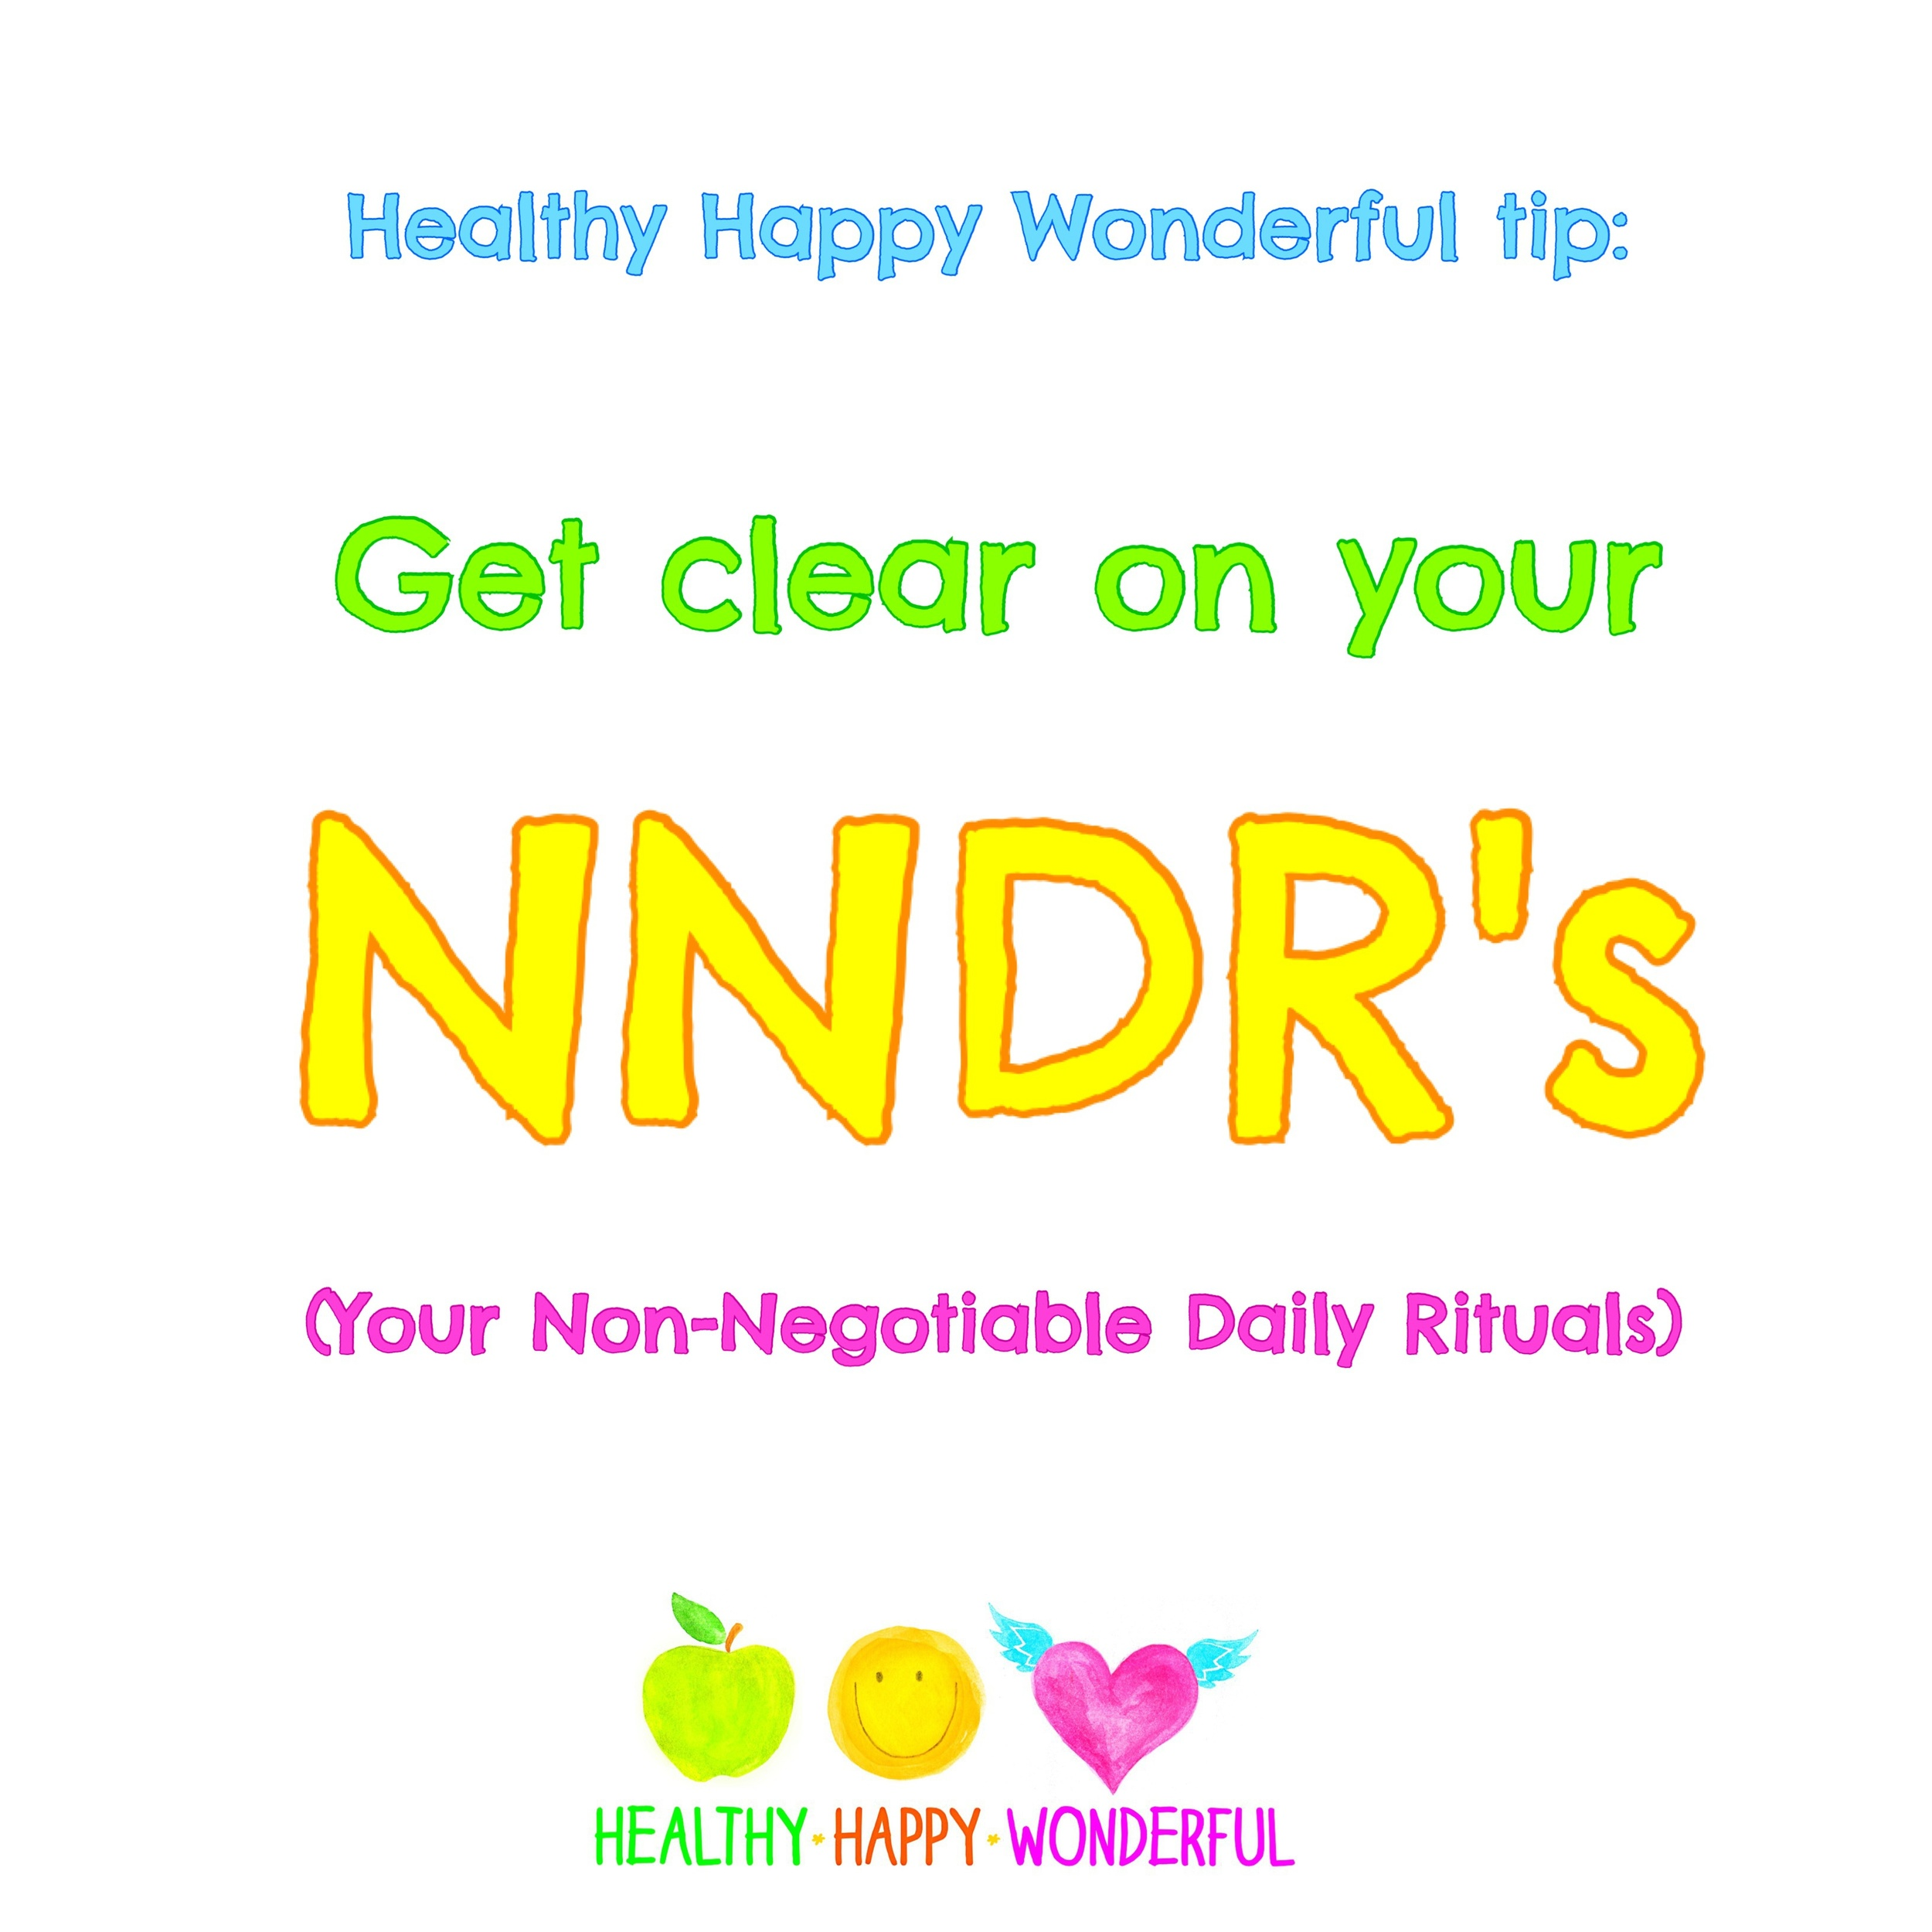 Get clear on your Non-Negotiable Daily Rituals!